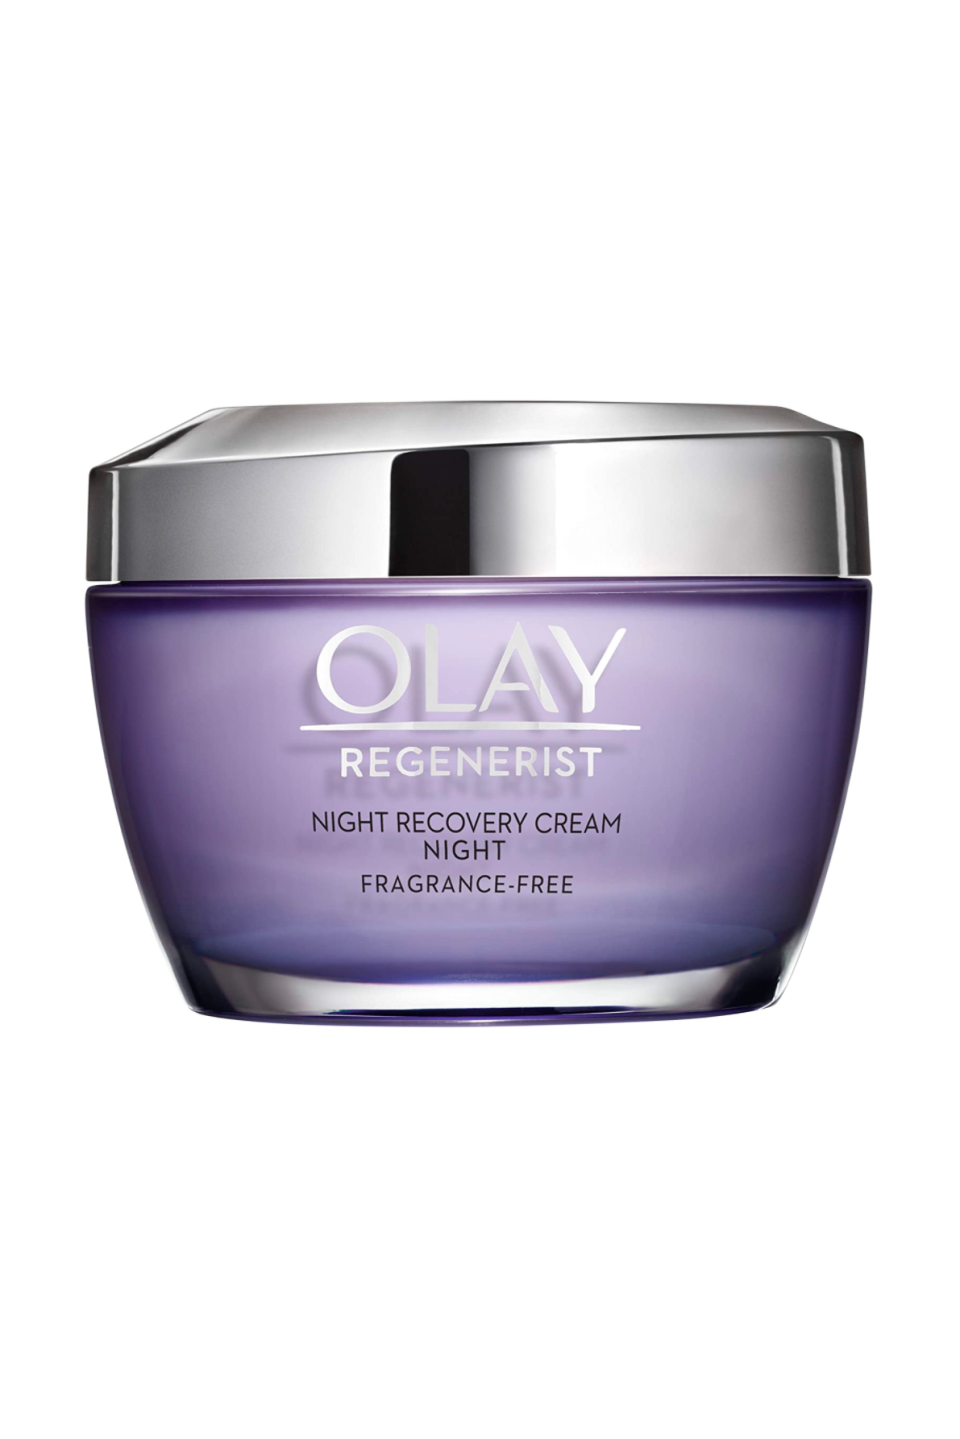 """<p><strong>Olay</strong></p><p>amazon.com</p><p><strong>$22.99</strong></p><p><a href=""""https://www.amazon.com/dp/B01M4R7CC5?tag=syn-yahoo-20&ascsubtag=%5Bartid%7C10058.g.33597196%5Bsrc%7Cyahoo-us"""" rel=""""nofollow noopener"""" target=""""_blank"""" data-ylk=""""slk:SHOP IT"""" class=""""link rapid-noclick-resp"""">SHOP IT</a></p><p>If you need to banish fine lines and dark spots on a budget, pick up this vitamin-infused night cream. </p>"""